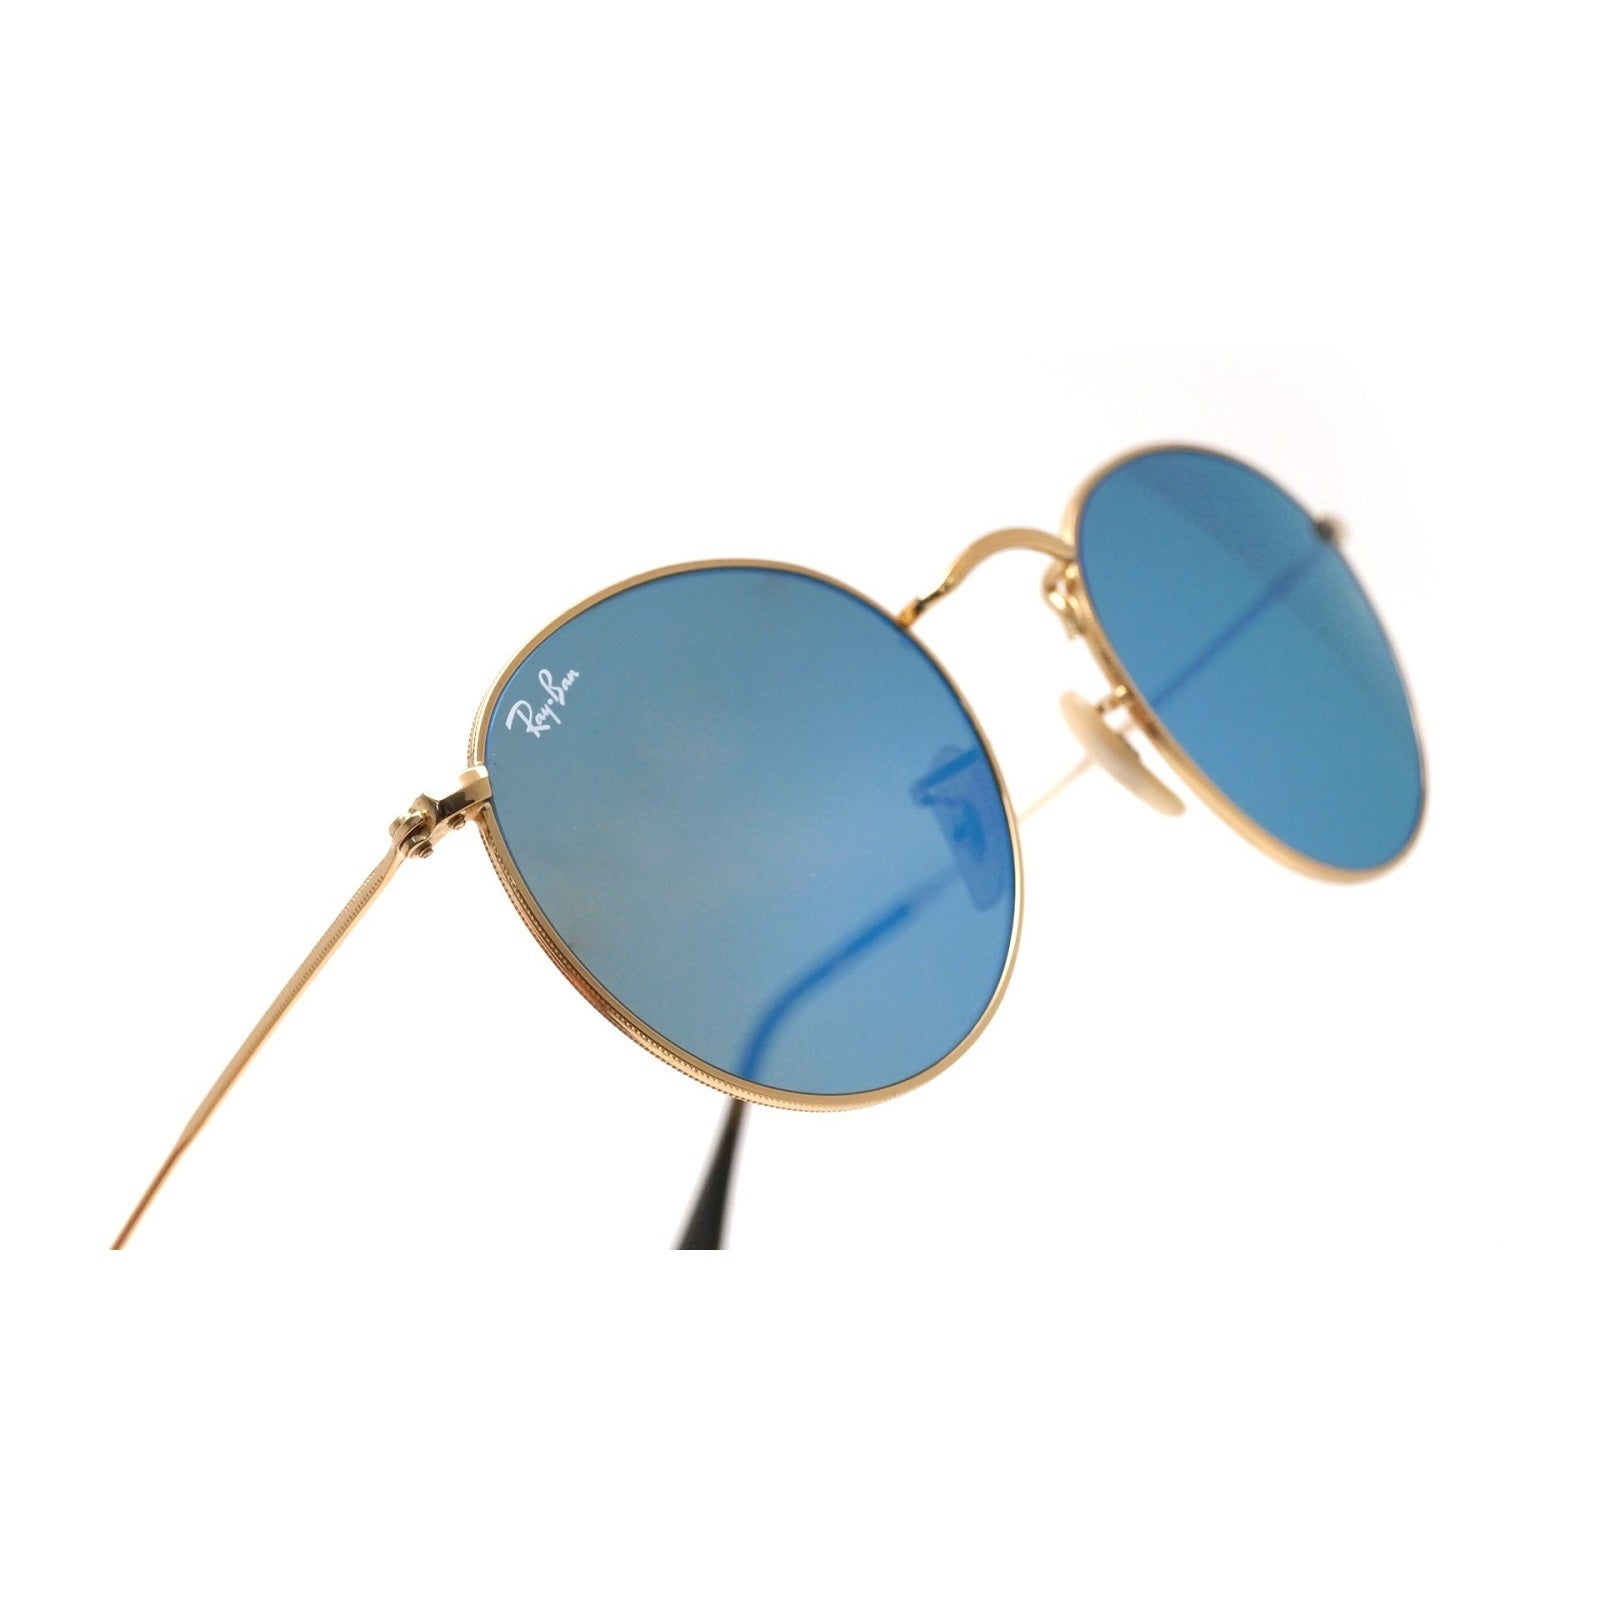 7464a9be6a Shop Ray-Ban RB3447N 001 9O Unisex Round Flat Gold Frame Light Blue  Gradient Flash Lens Sunglasses - Free Shipping Today - Overstock - 15002964